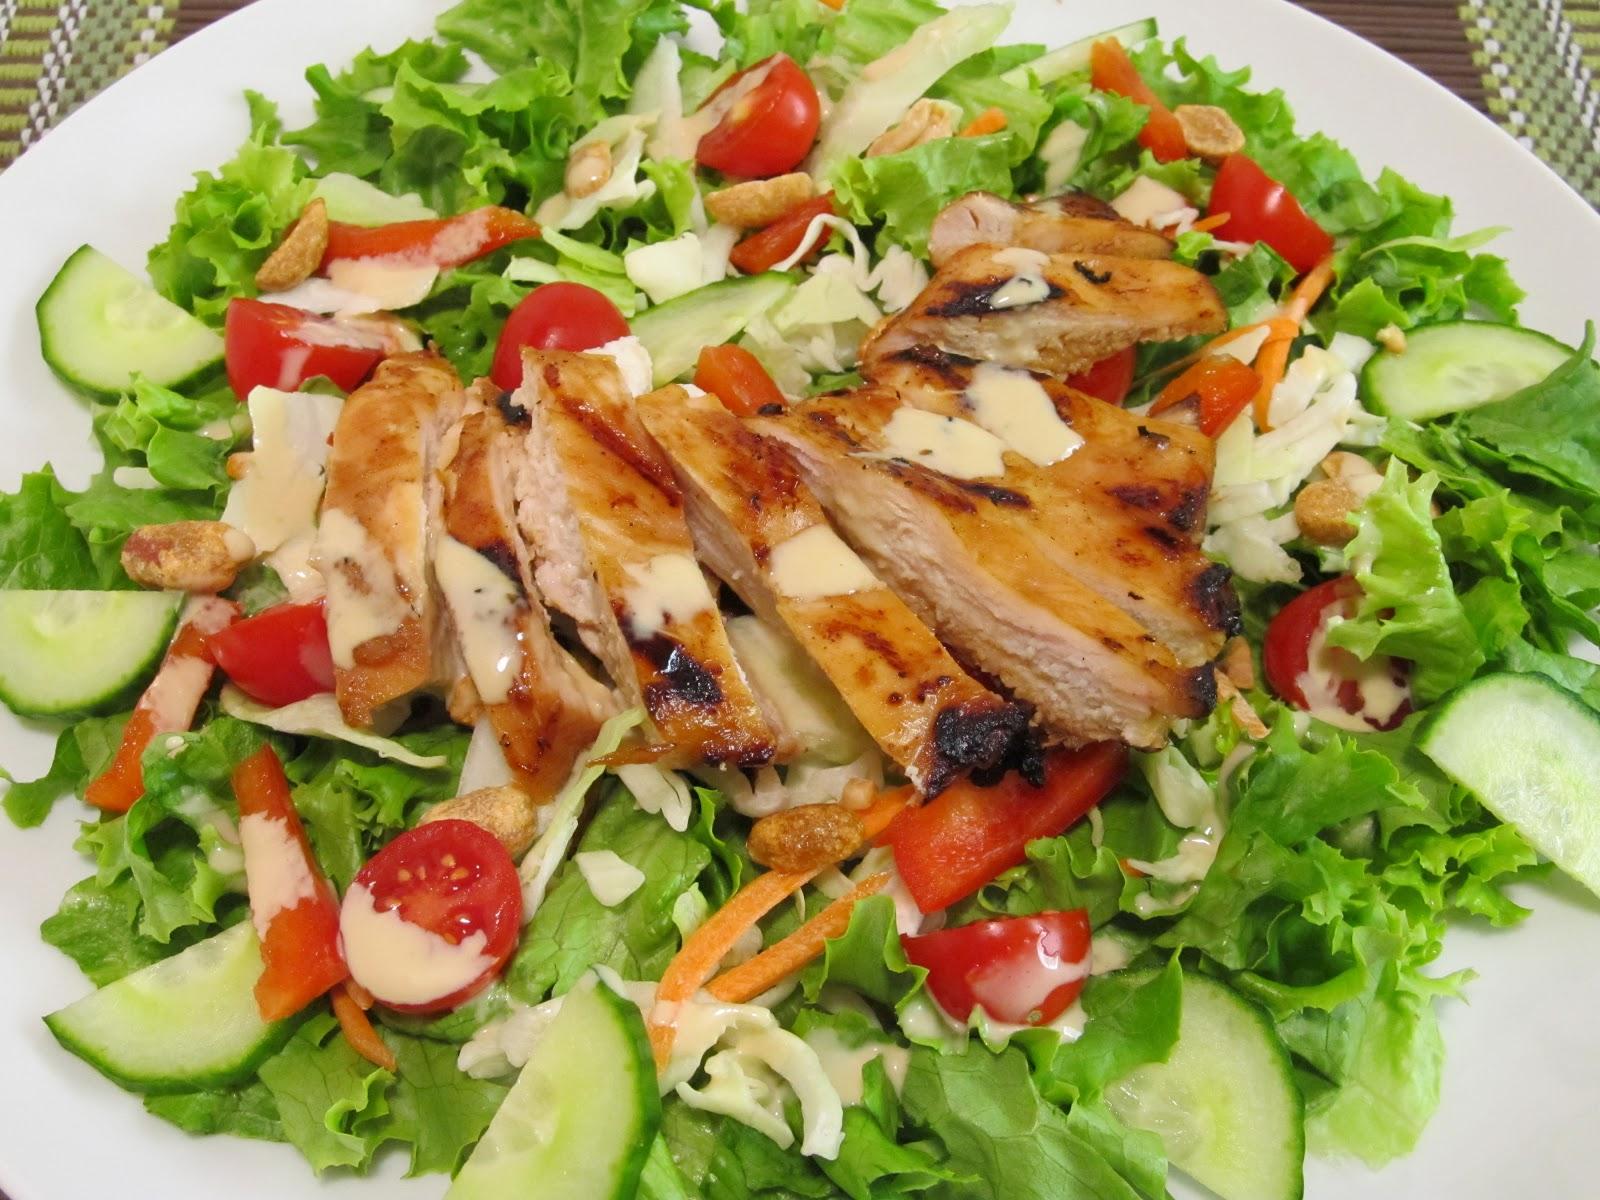 Jenn's Food Journey: Grilled Teriyaki Chicken Salad with Wasabi ...